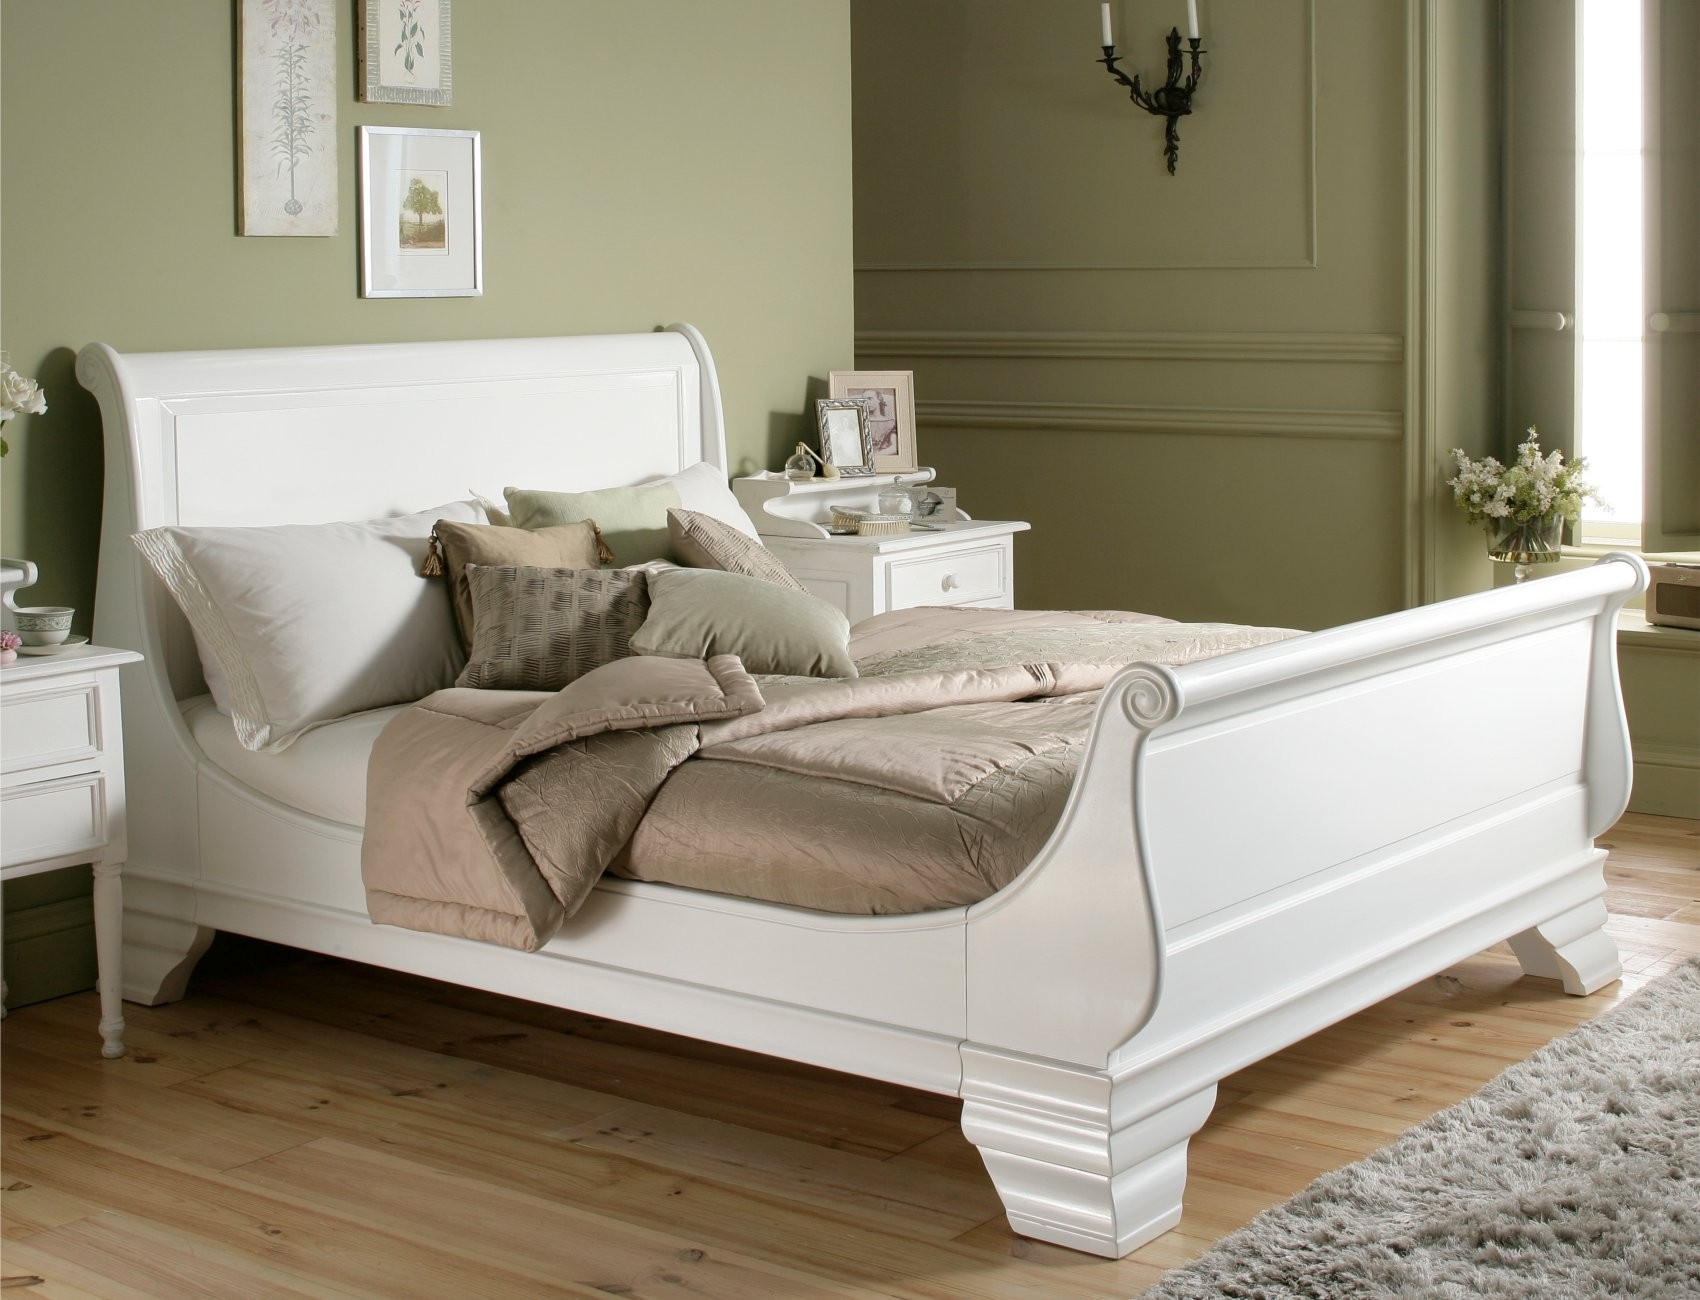 White Wooden King Size Bed Frame